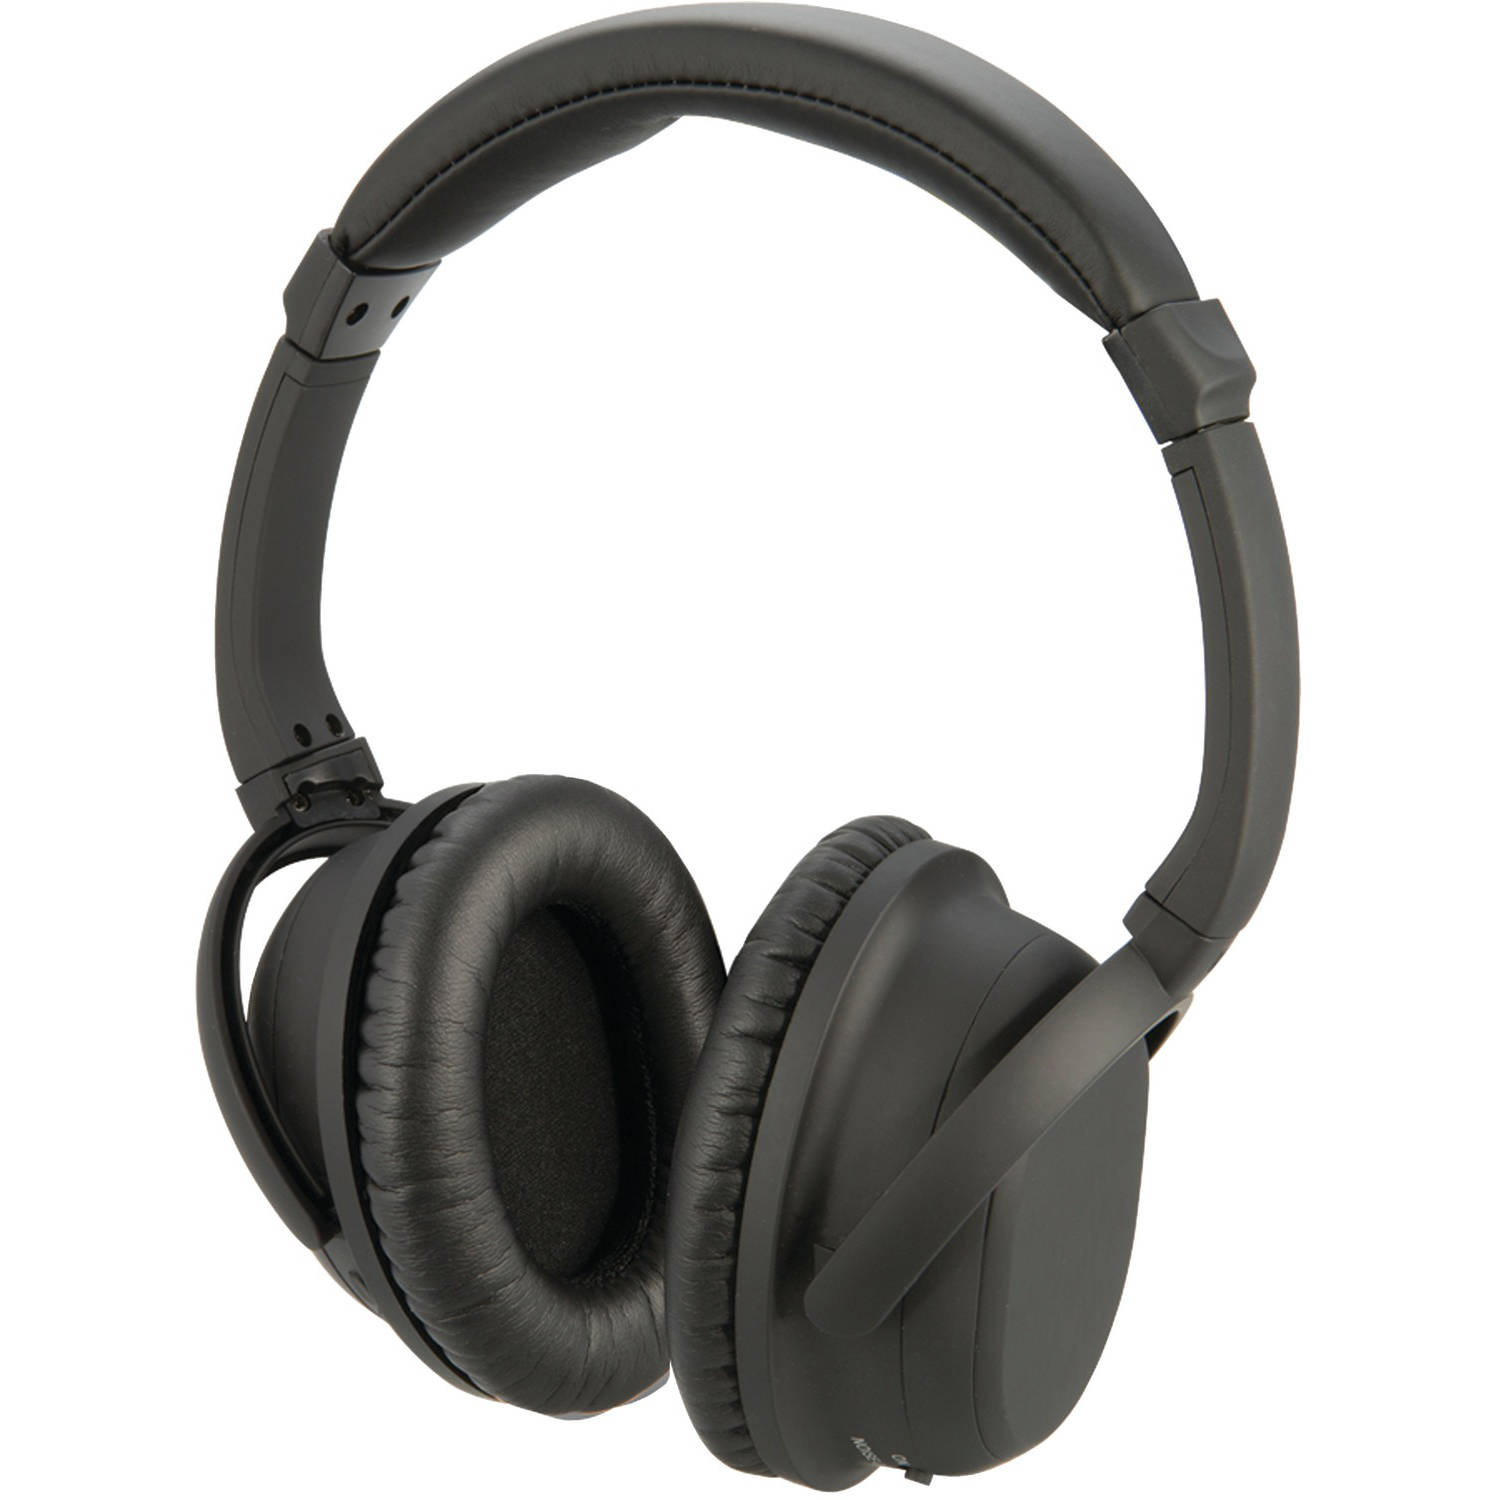 iLive IAHP86B Bluetooth Noise-Canceling Headphones with Microphone and Auxiliary Input